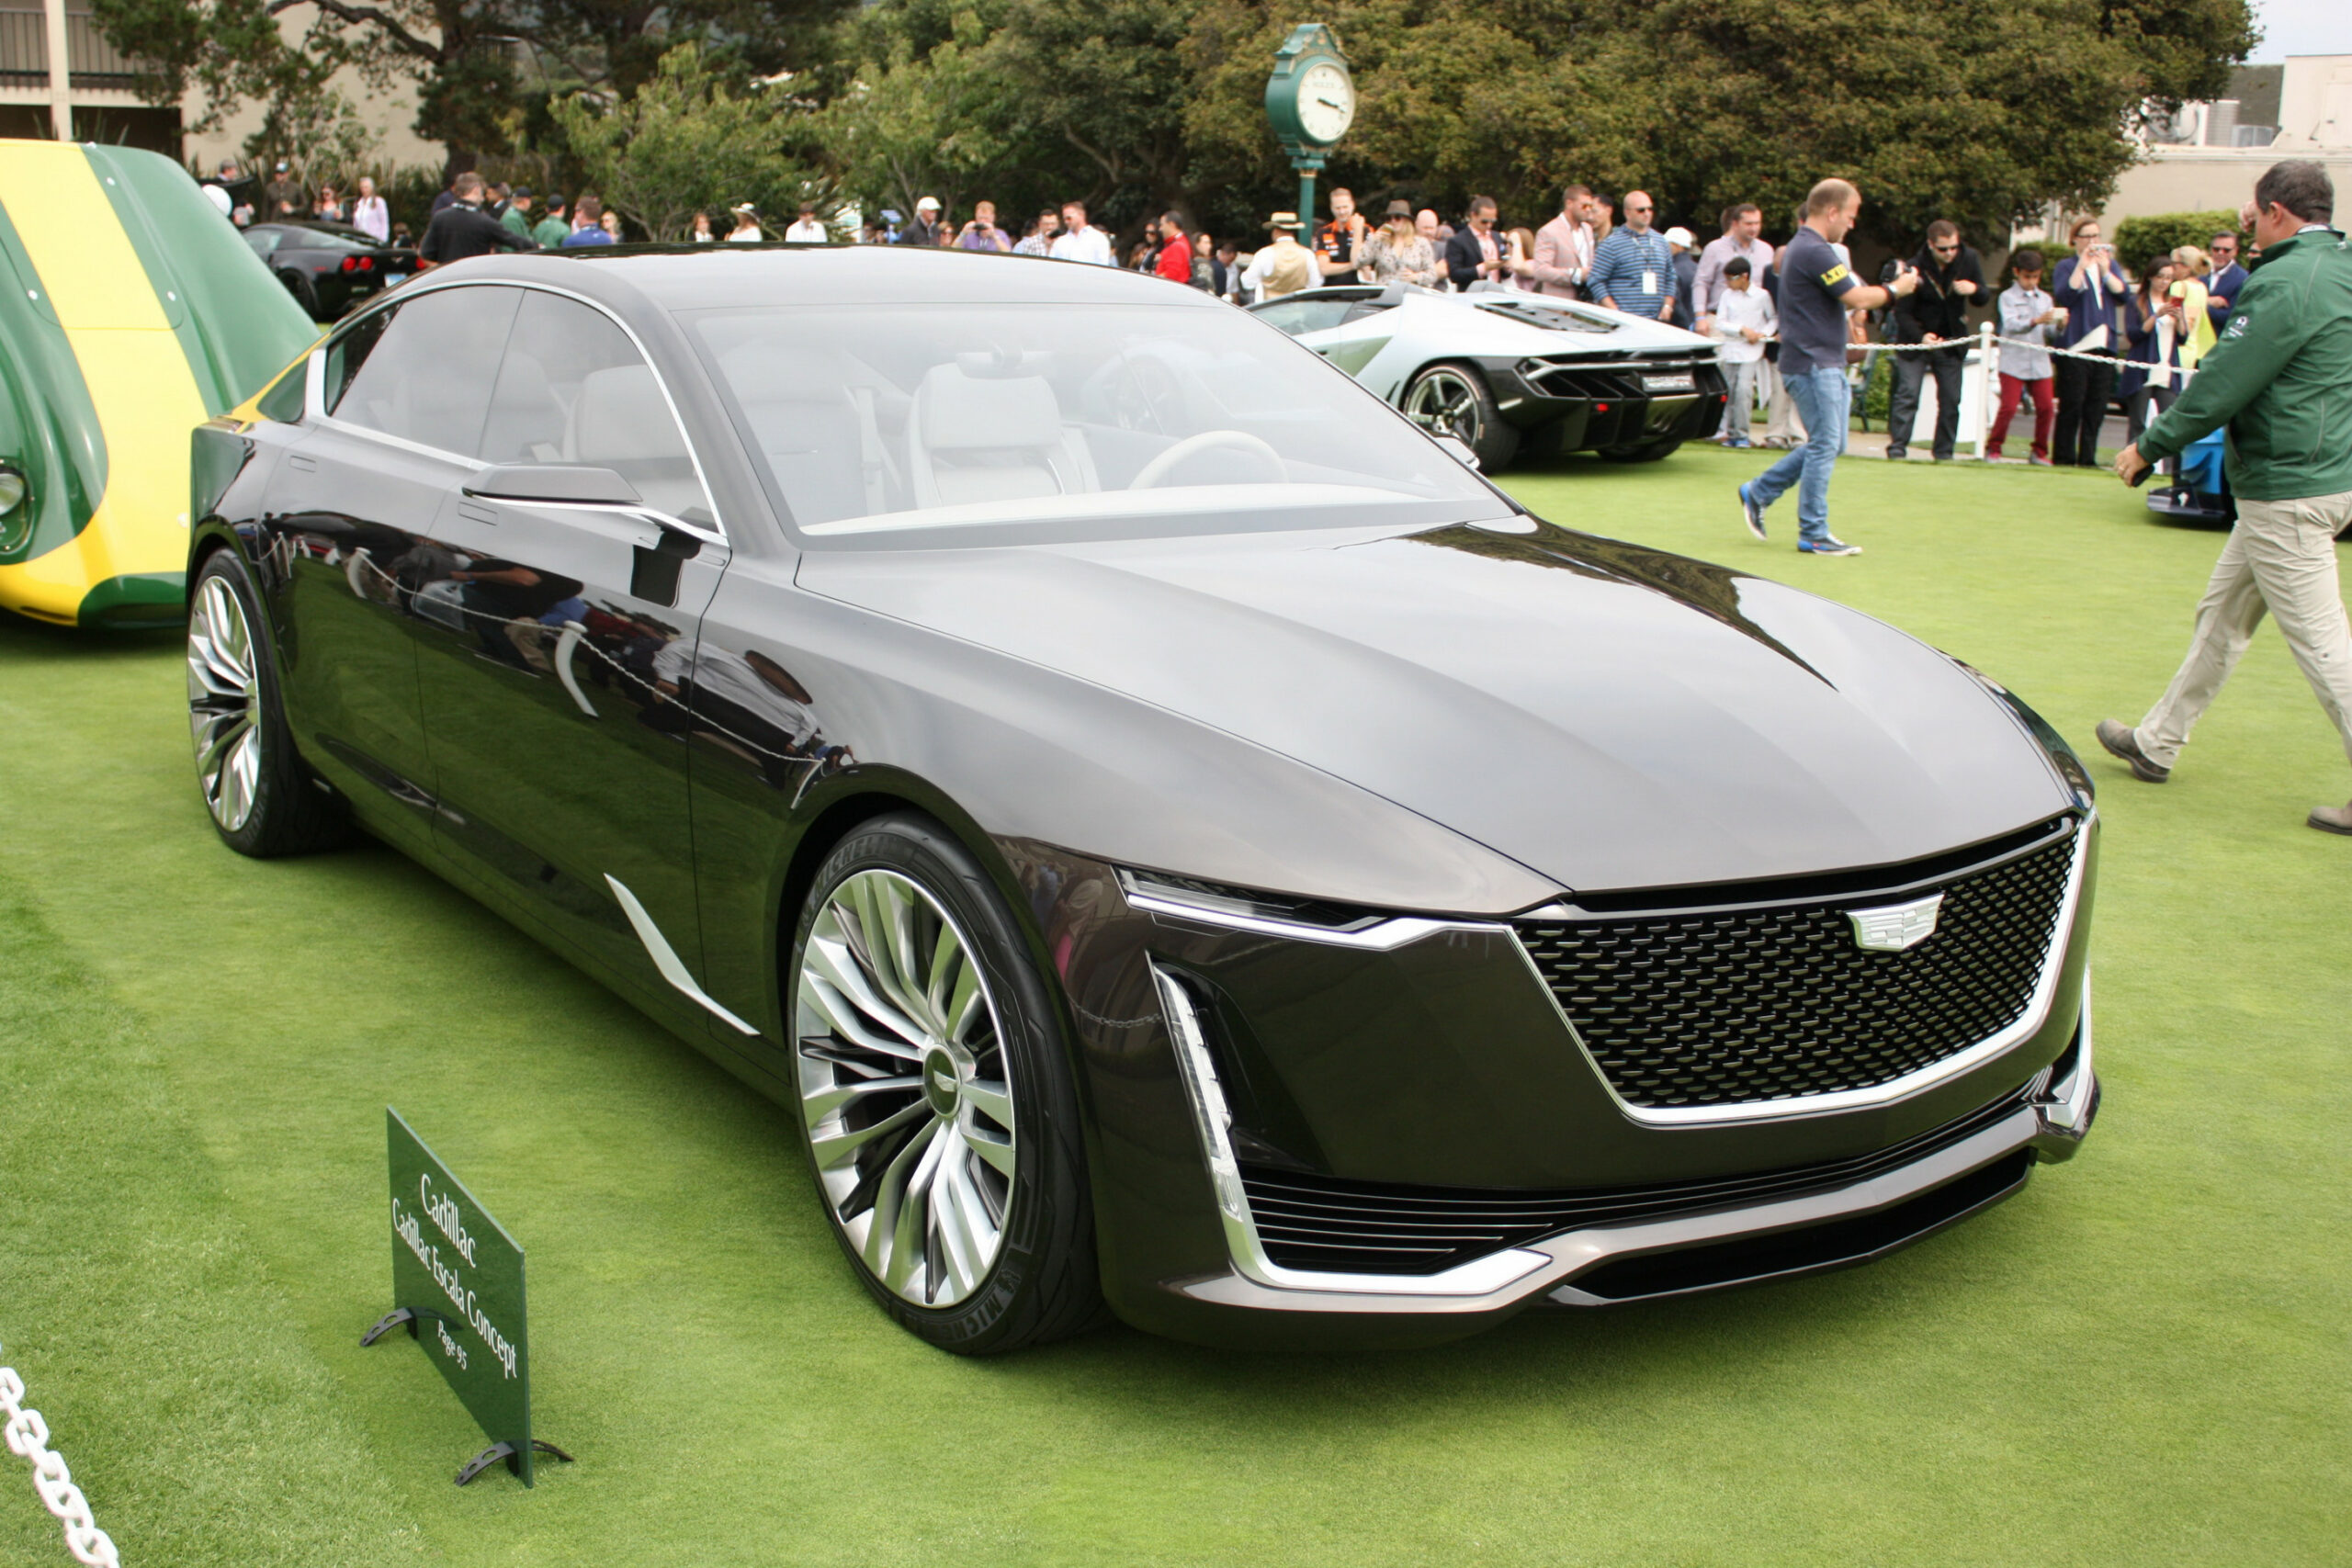 Redesign and Concept 2022 Cadillac LTS